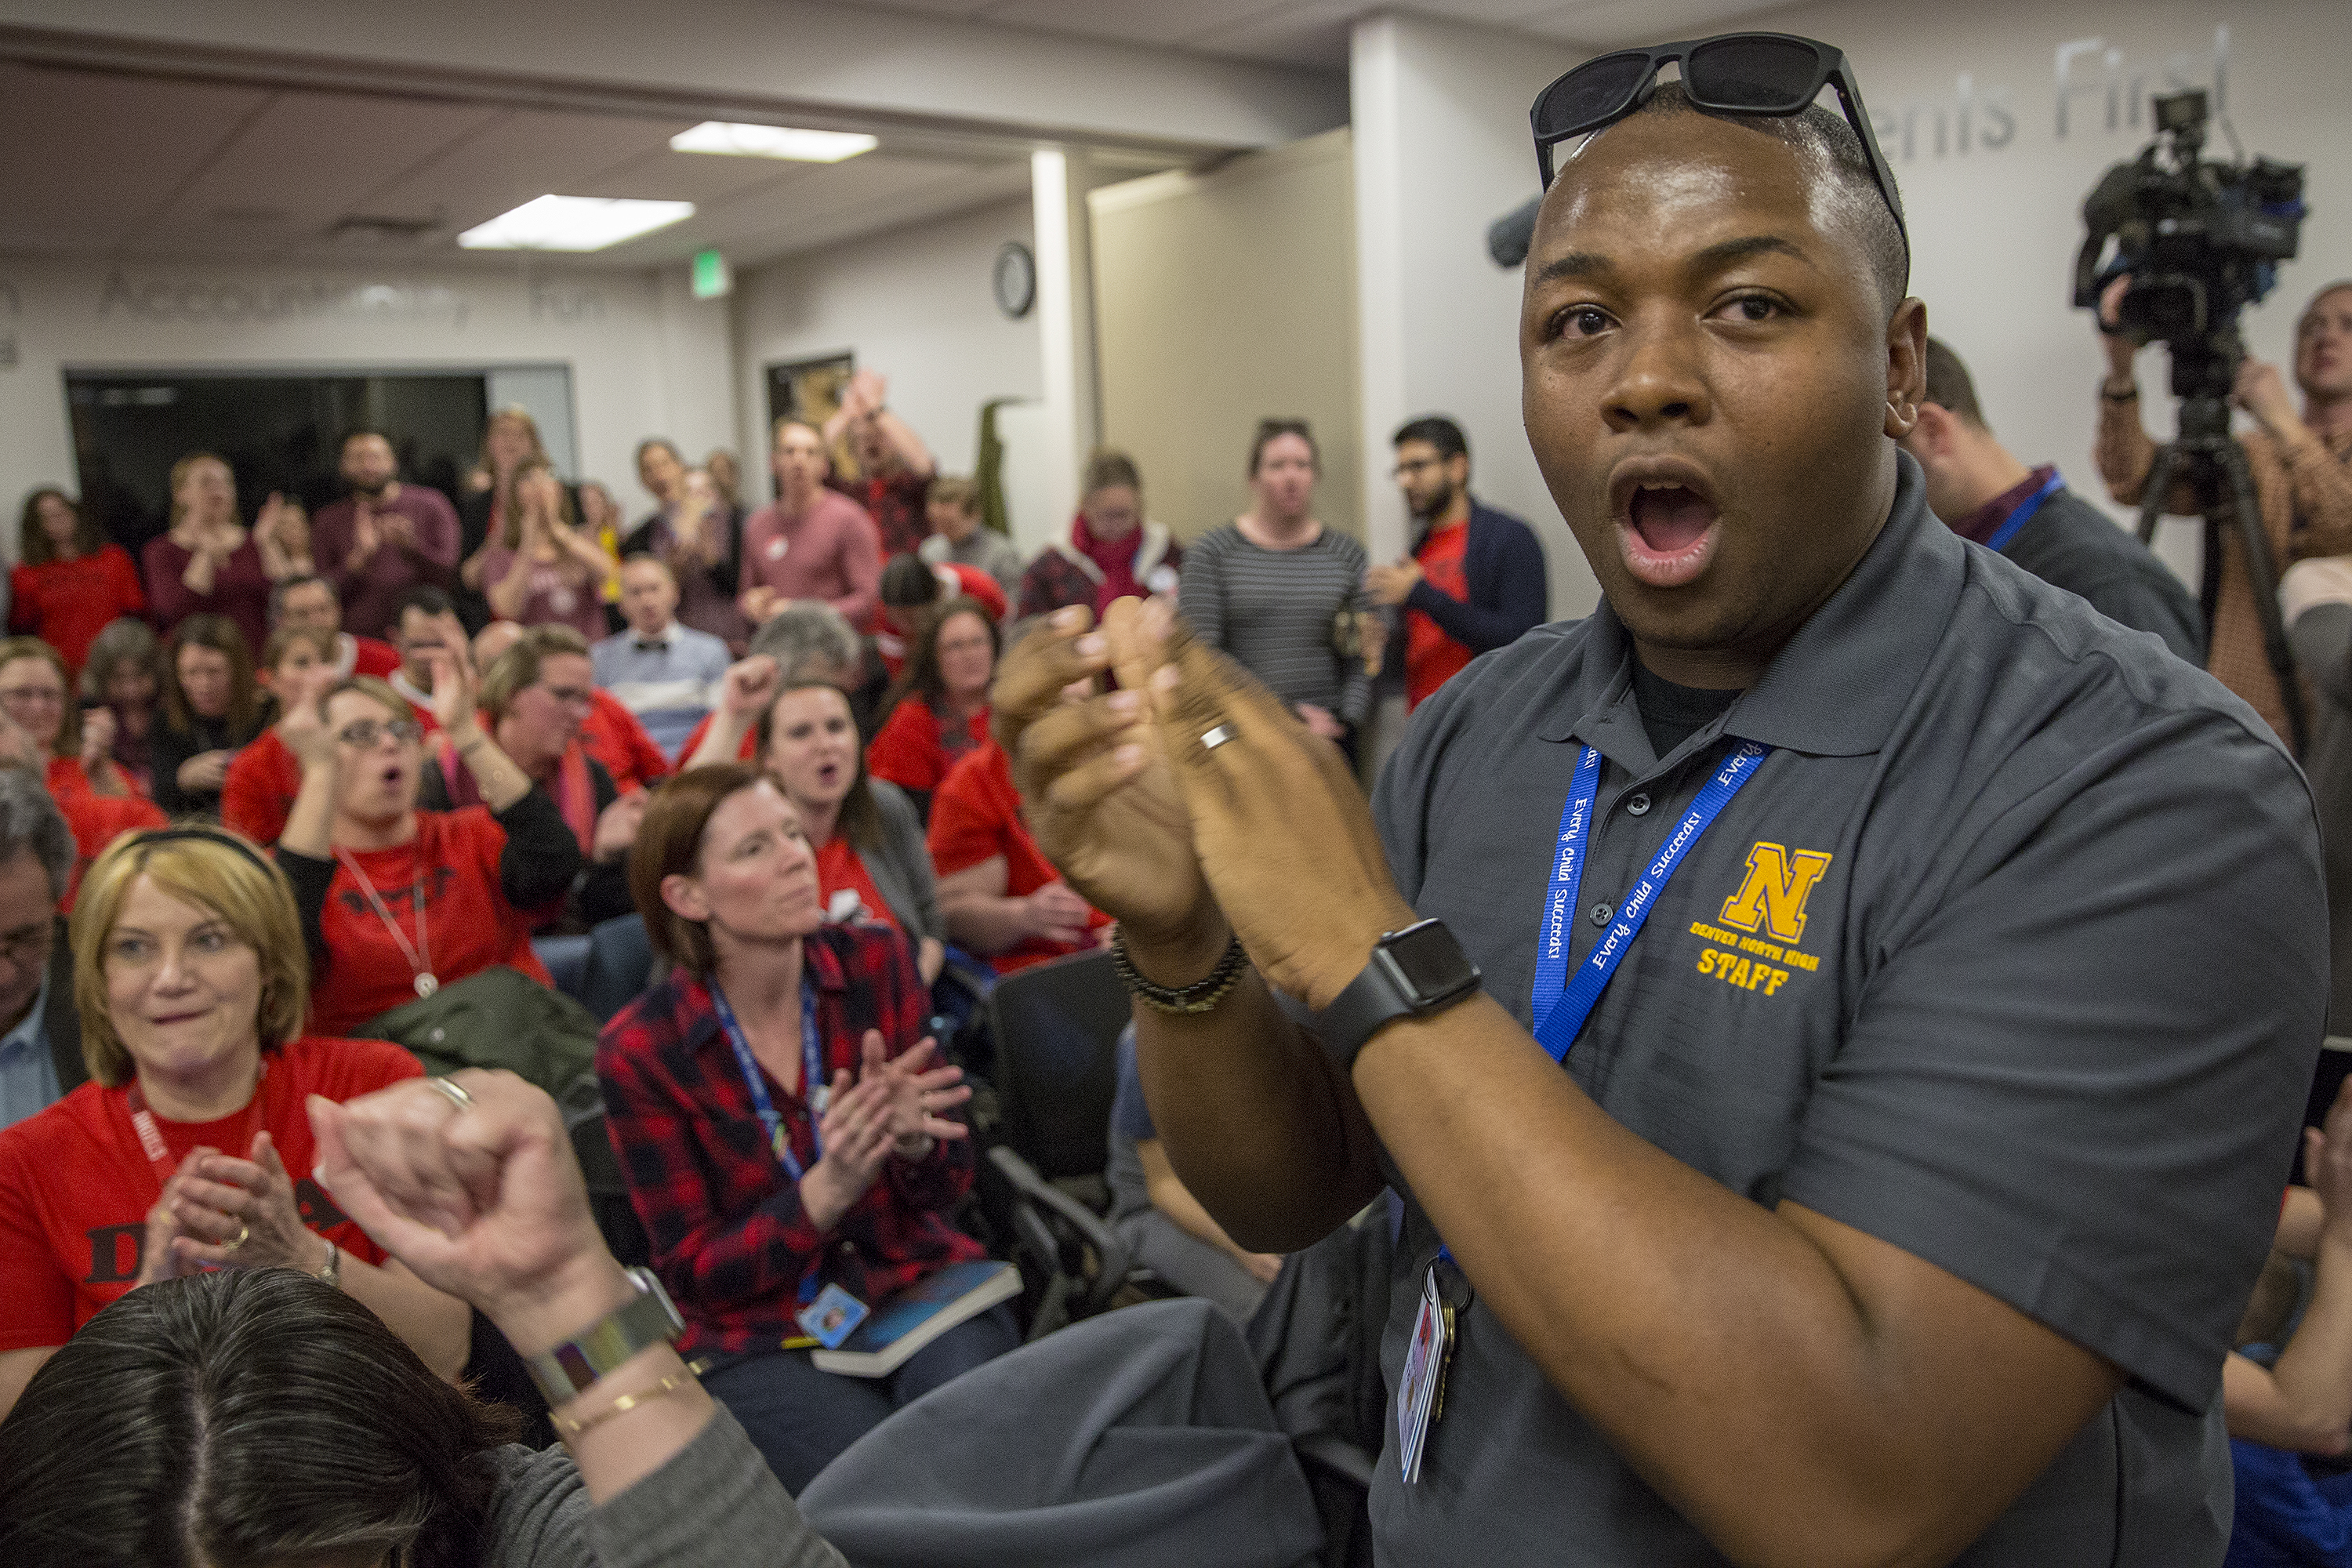 <p>Contract negotiations restarted briefly Thursday, Jan. 31, 2019 between the Denver Classroom Teachers Association and Denver Public Schools. Tay Anderson, a candidate for the school board's at-large seat, led chants supporting the union.</p>